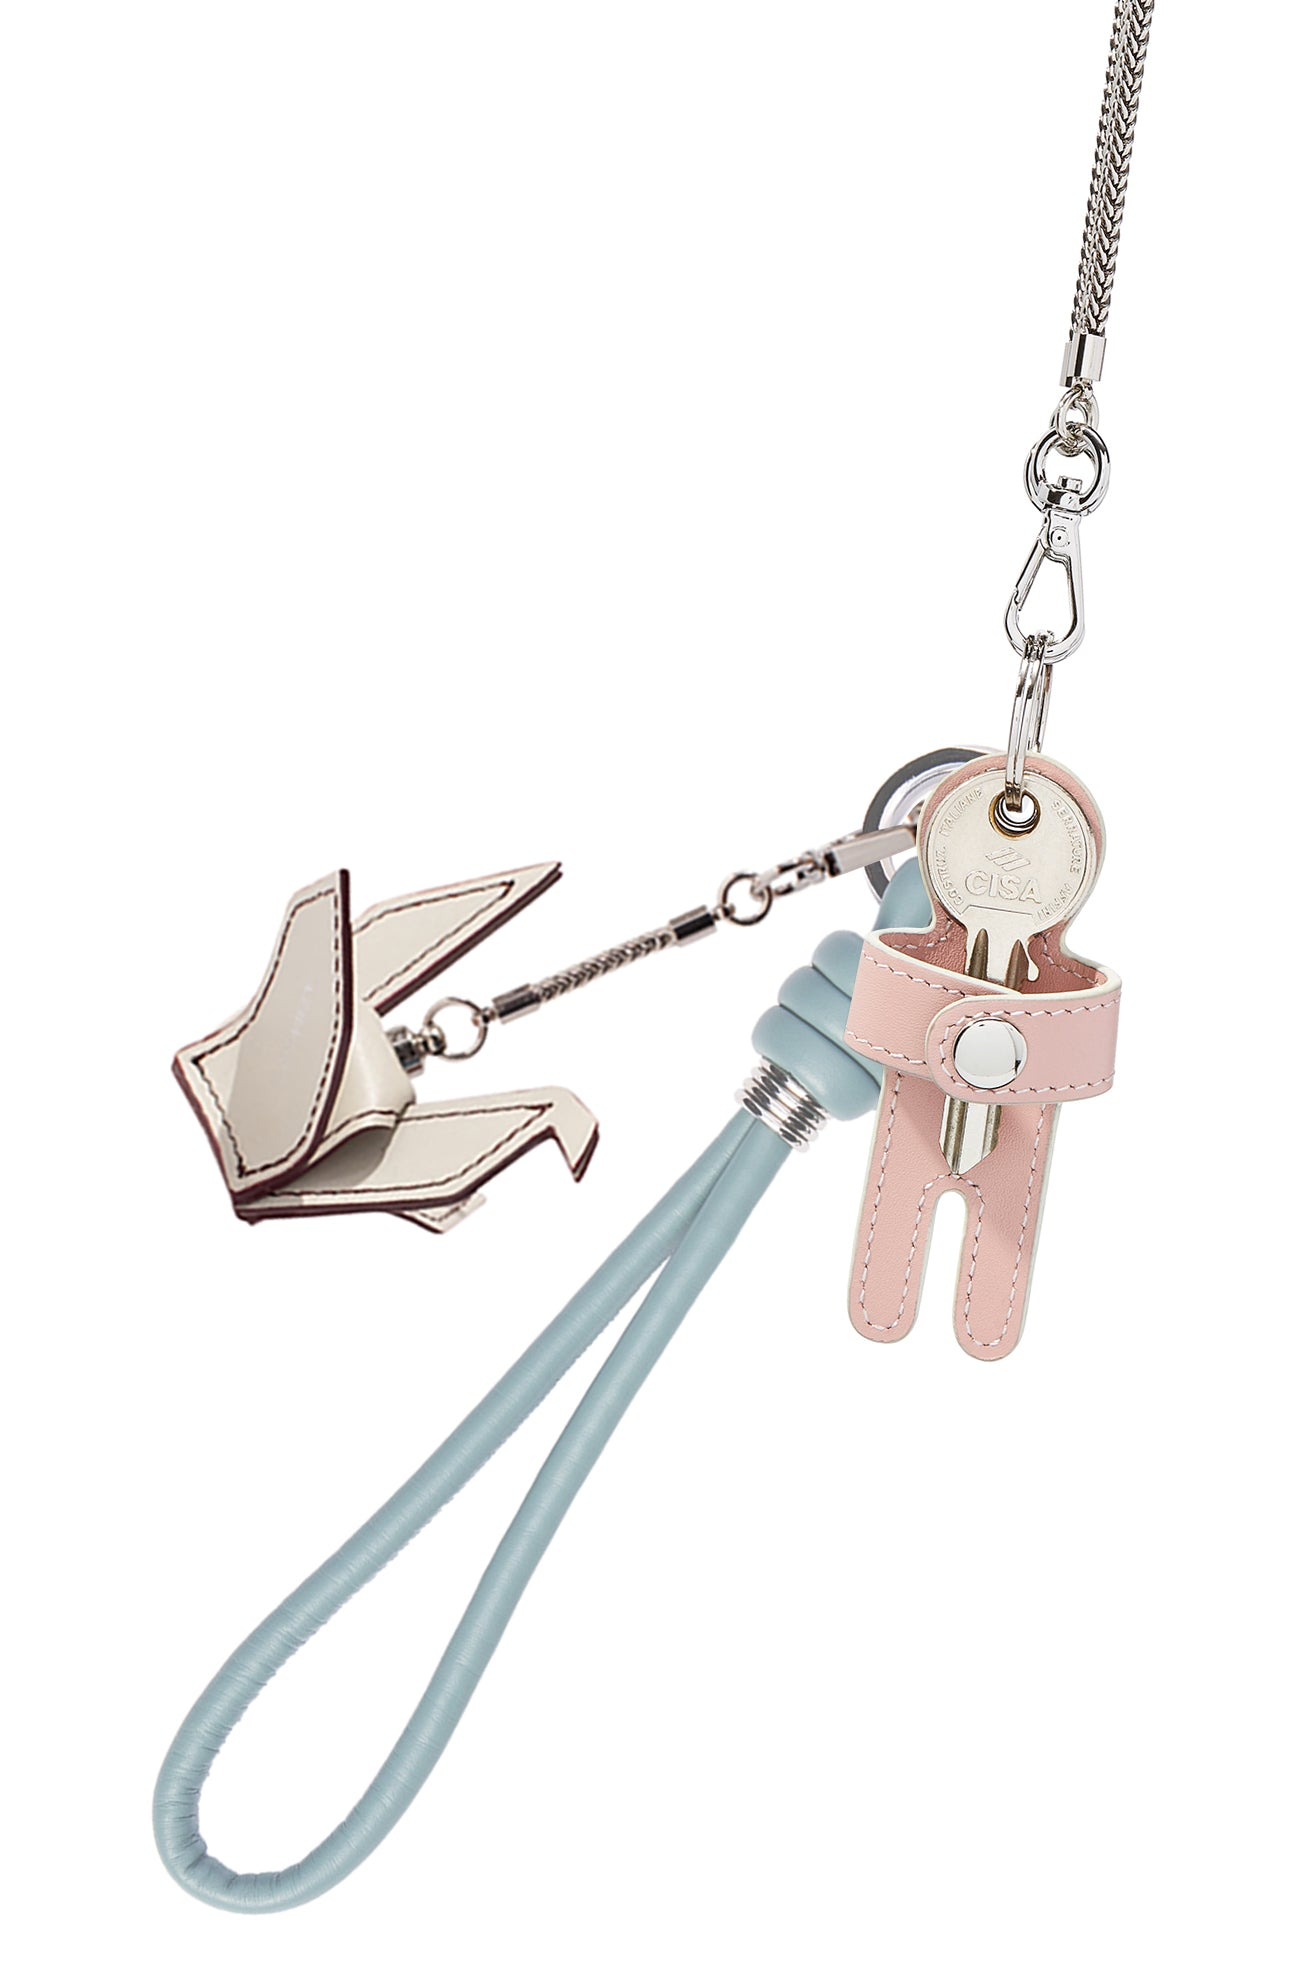 Keychain & Charm Necklace - HAN WEN STUDIO